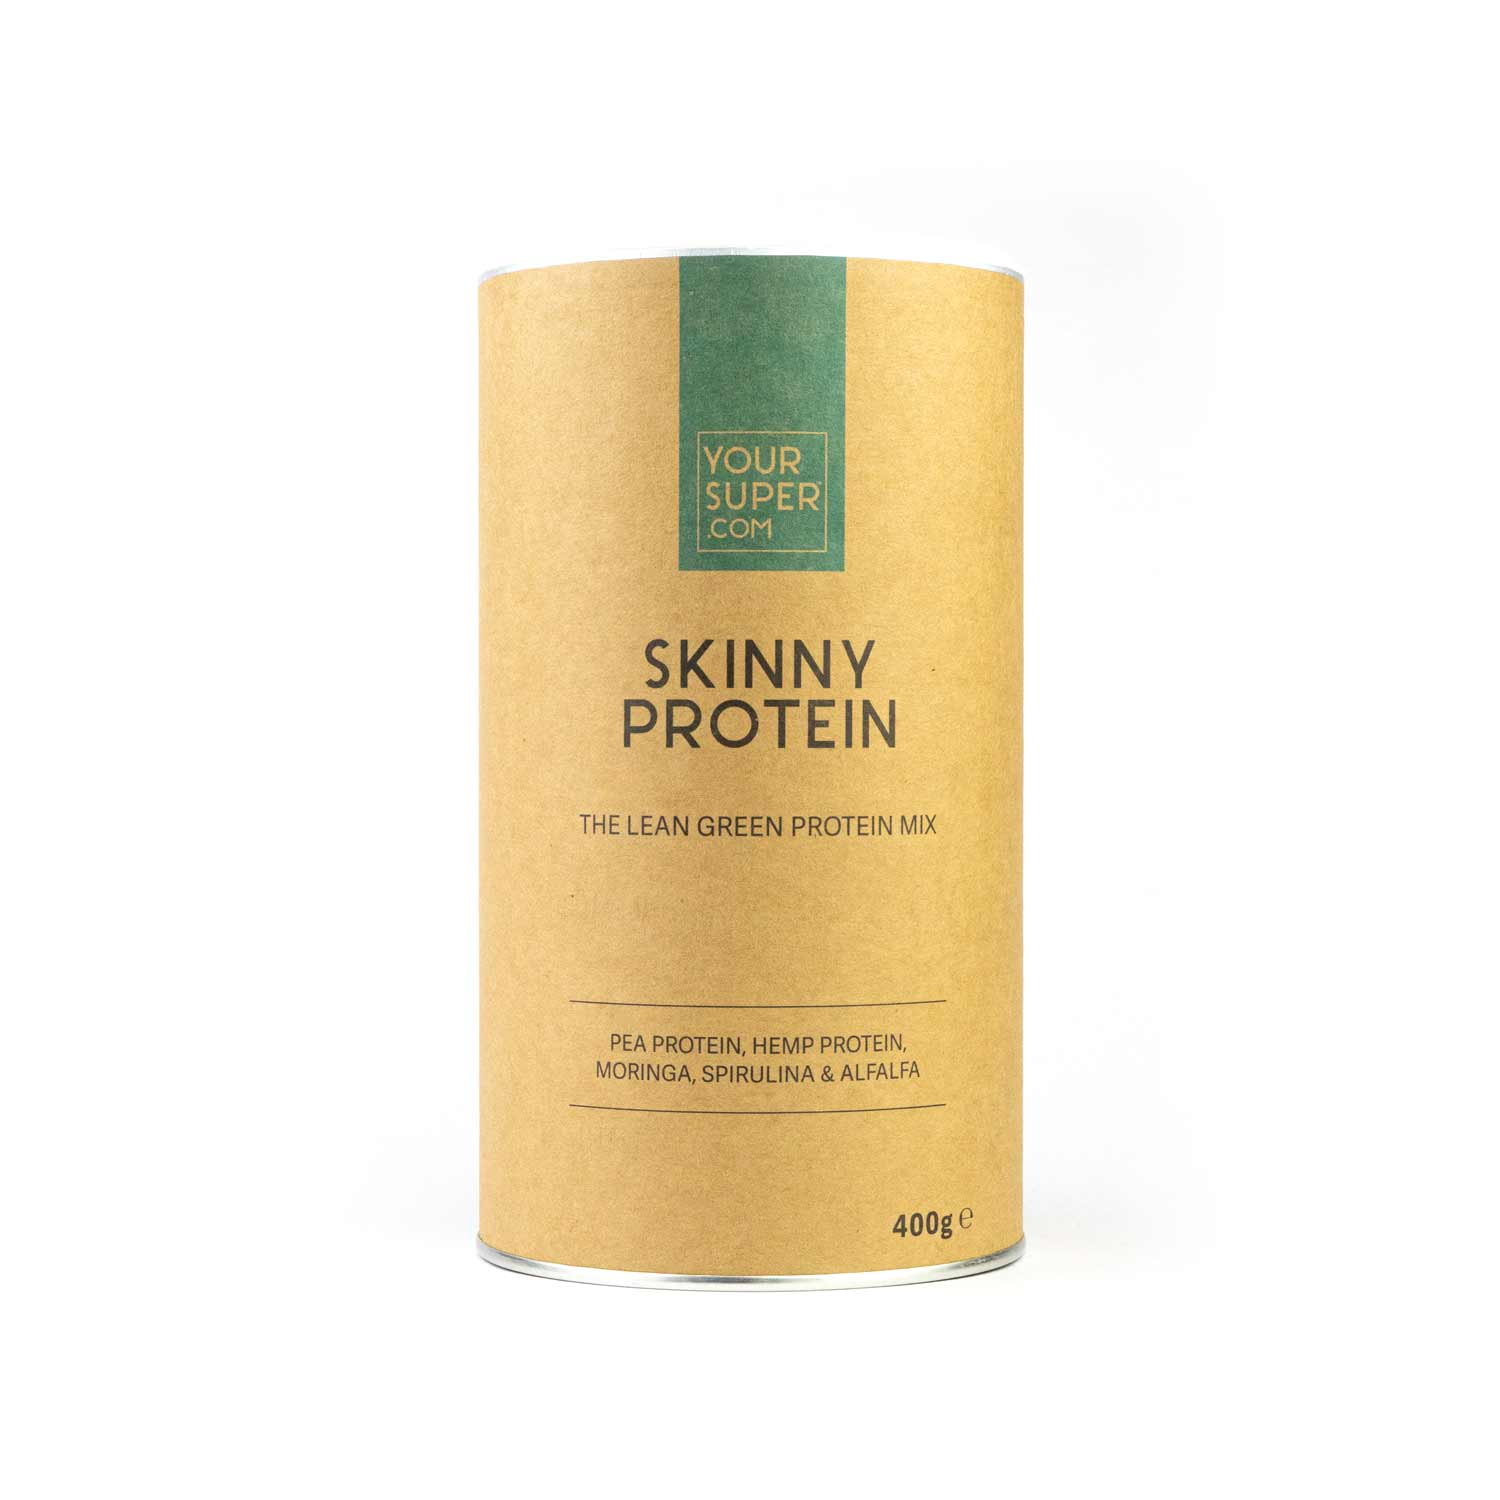 Your Superfoods Skinny Protein 400g - NEUROGOLD